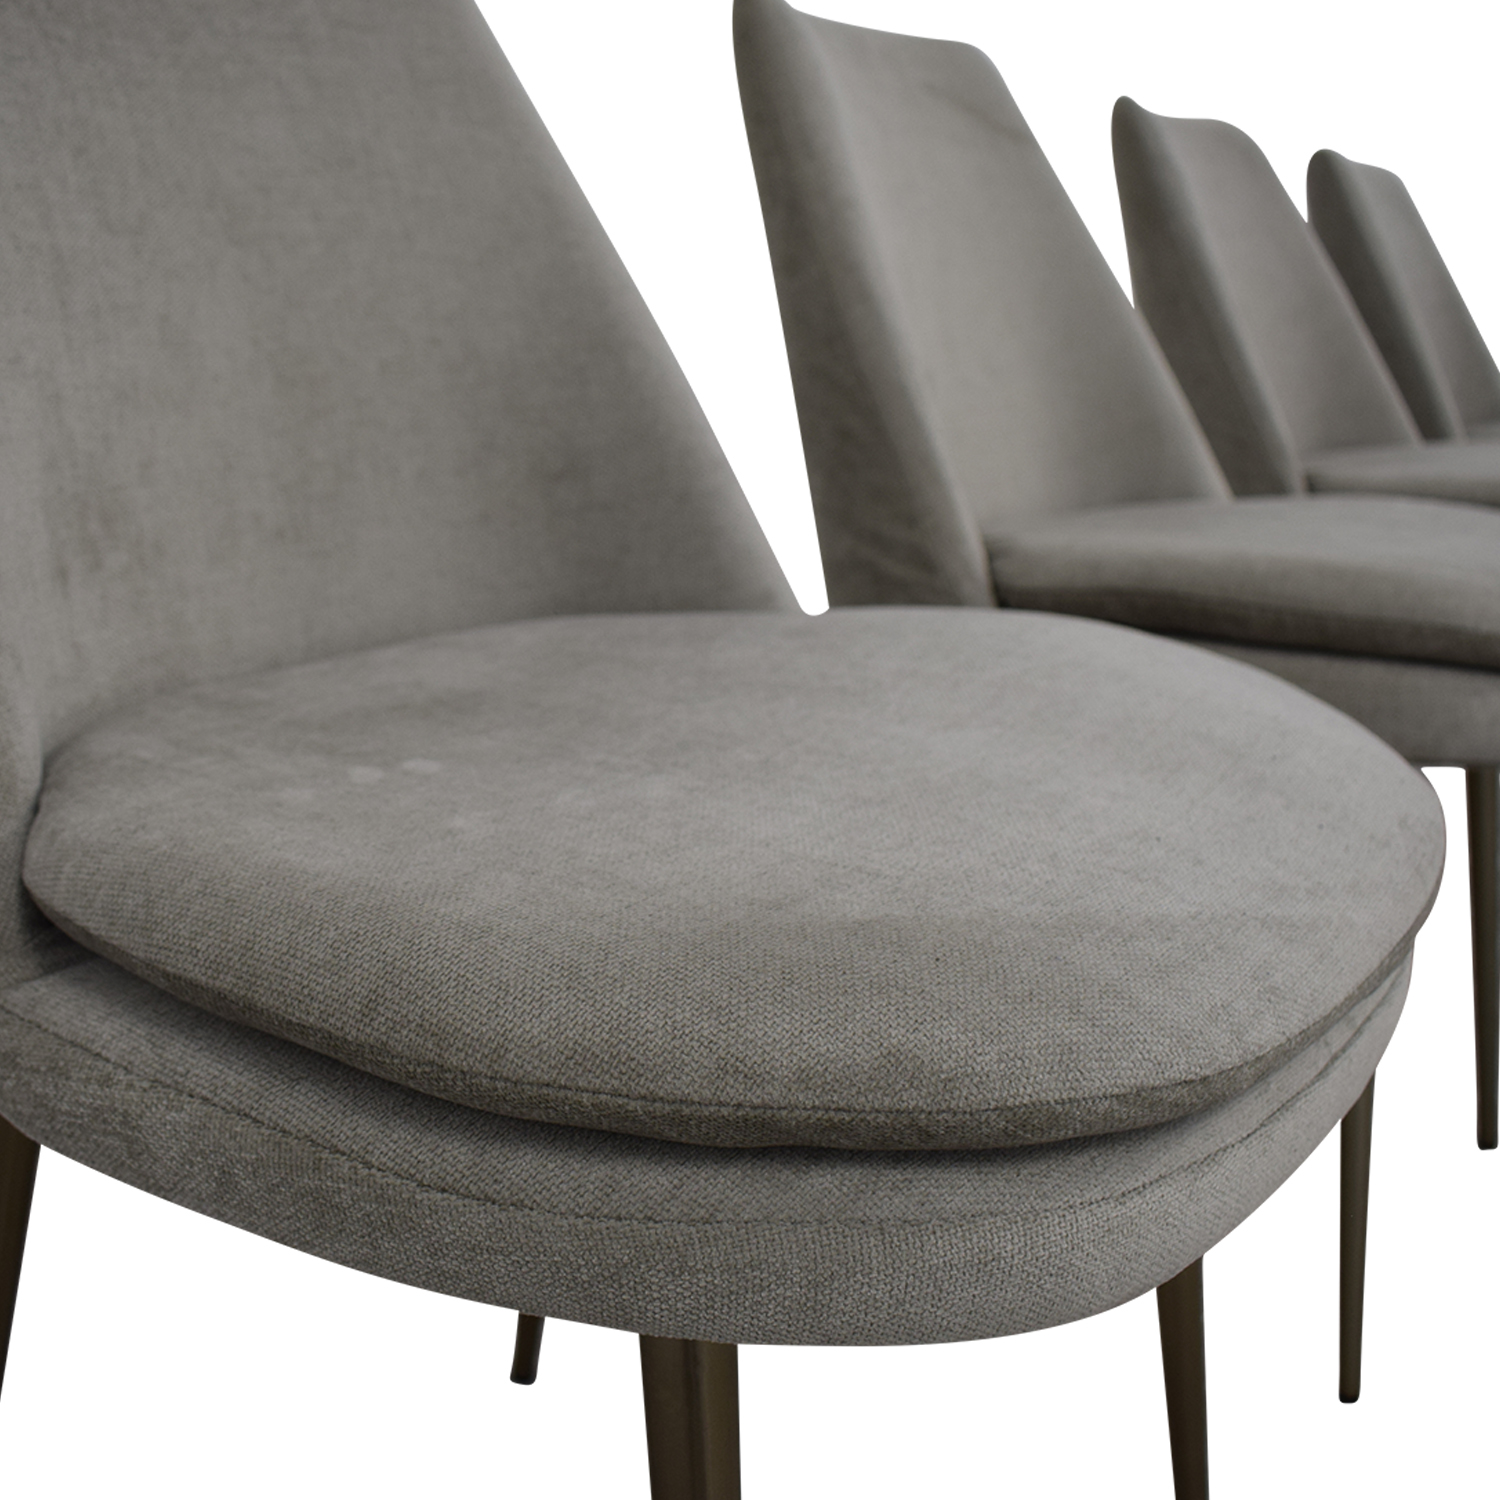 West Elm West Elm Finley Low Back Dining Chairs coupon